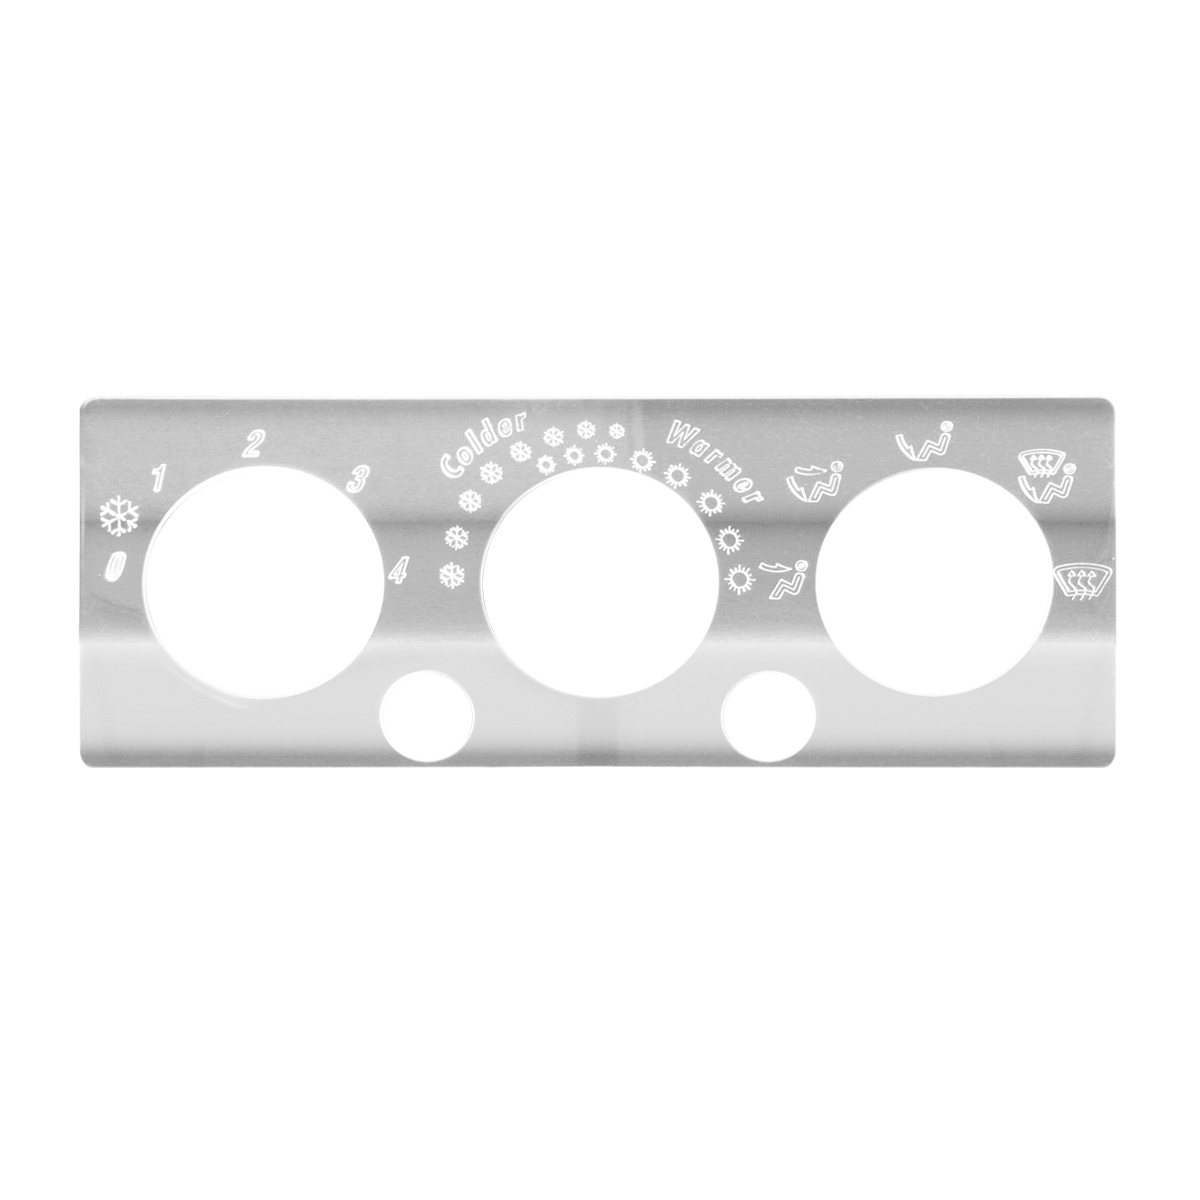 68326 Stainless Steel A/C & Heater Control Panel for International